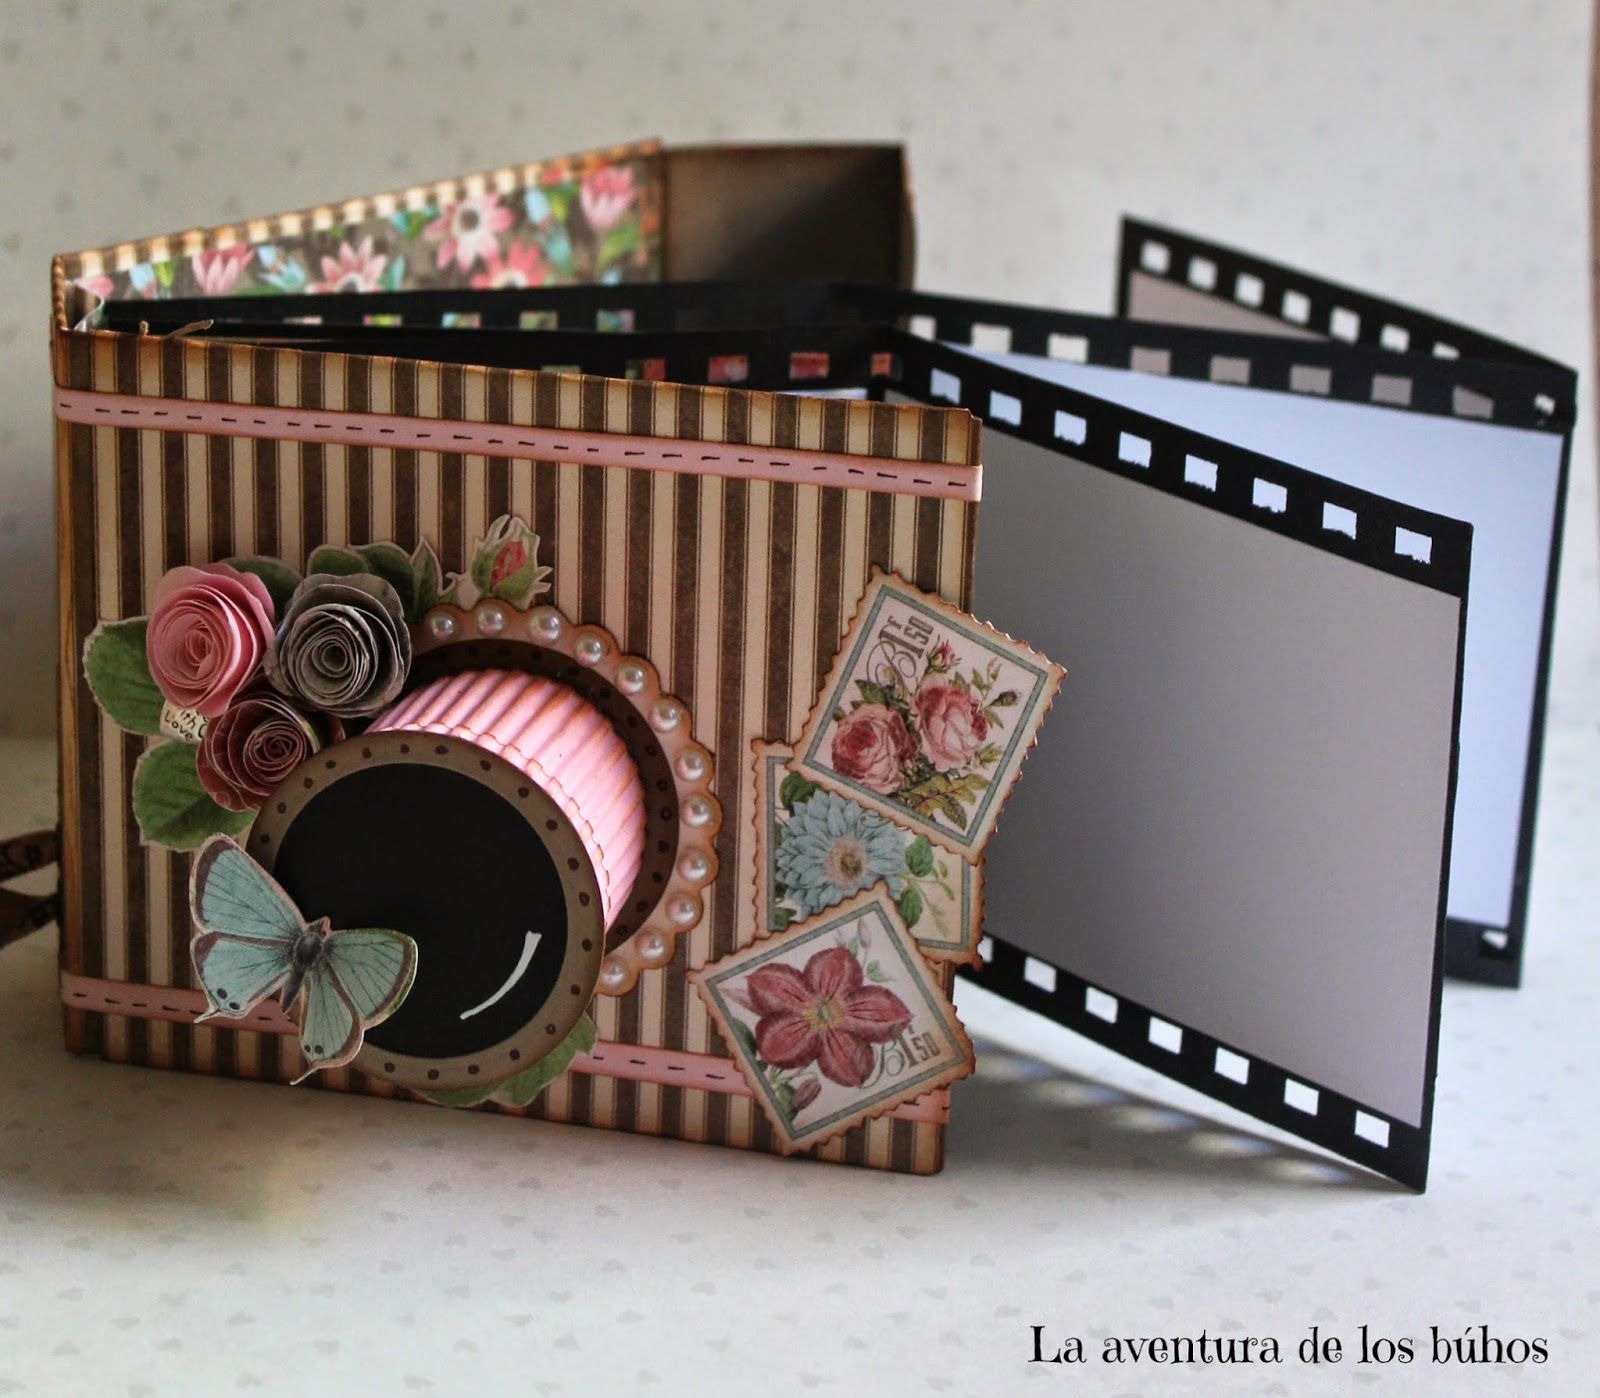 La aventura de los buhos photo camera mini album - Como hacer un album scrapbook ...